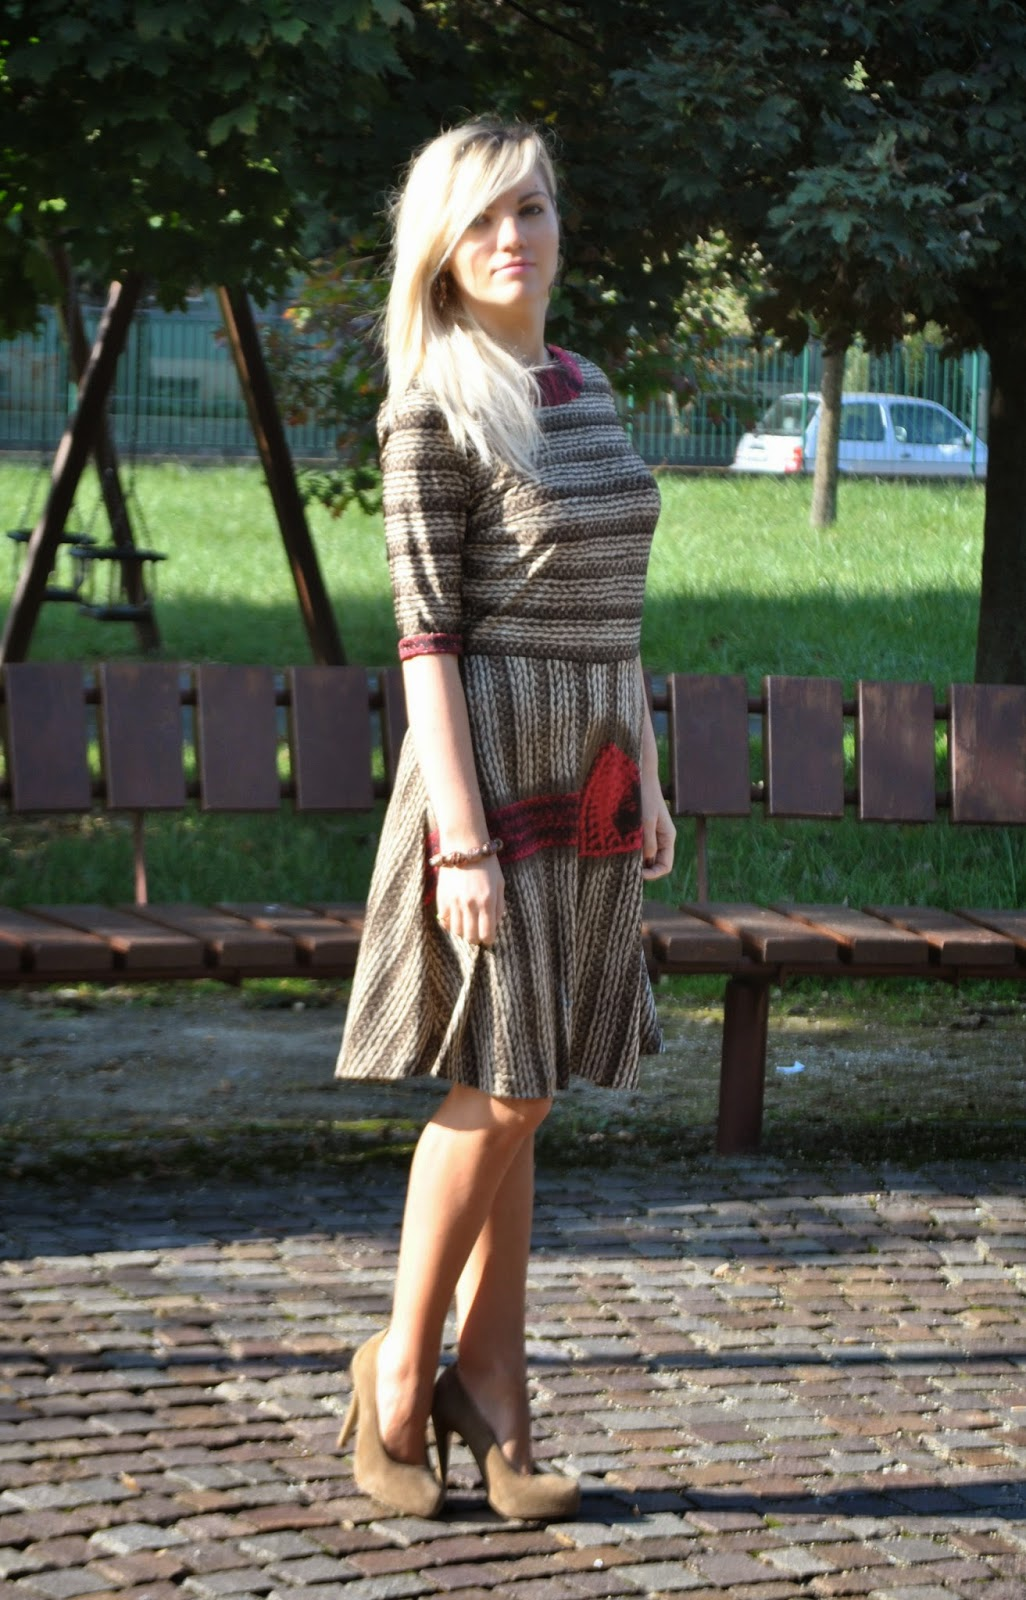 autumnal outfit printed dress red coat how to wear red coat how to wear printed dress fashion bloggers italy italian girl  outfit abito con gonna a ruota con stampa maglione di lana stampa lana abito gonna a ruota abiti invernali cappotto rosso outfit cappotto rosso come abbinare il cappotto rosso midi skirt how to wear red coat how to wear midi skirt winter dresses orecchini chandelier majique chandelier earrings majique decollete beige cappotto rosso sisley abito stampato fashion blogger italiane fashion blogger milano fashion blogger bionde ragazze bionde smalto color sangria scarpe benetton borsa louis vuitton mariafelicia magno fashion blogger mariafelicia magno colorblock by felym outfit ottobre 2014 outfit autunnali outfit invernali